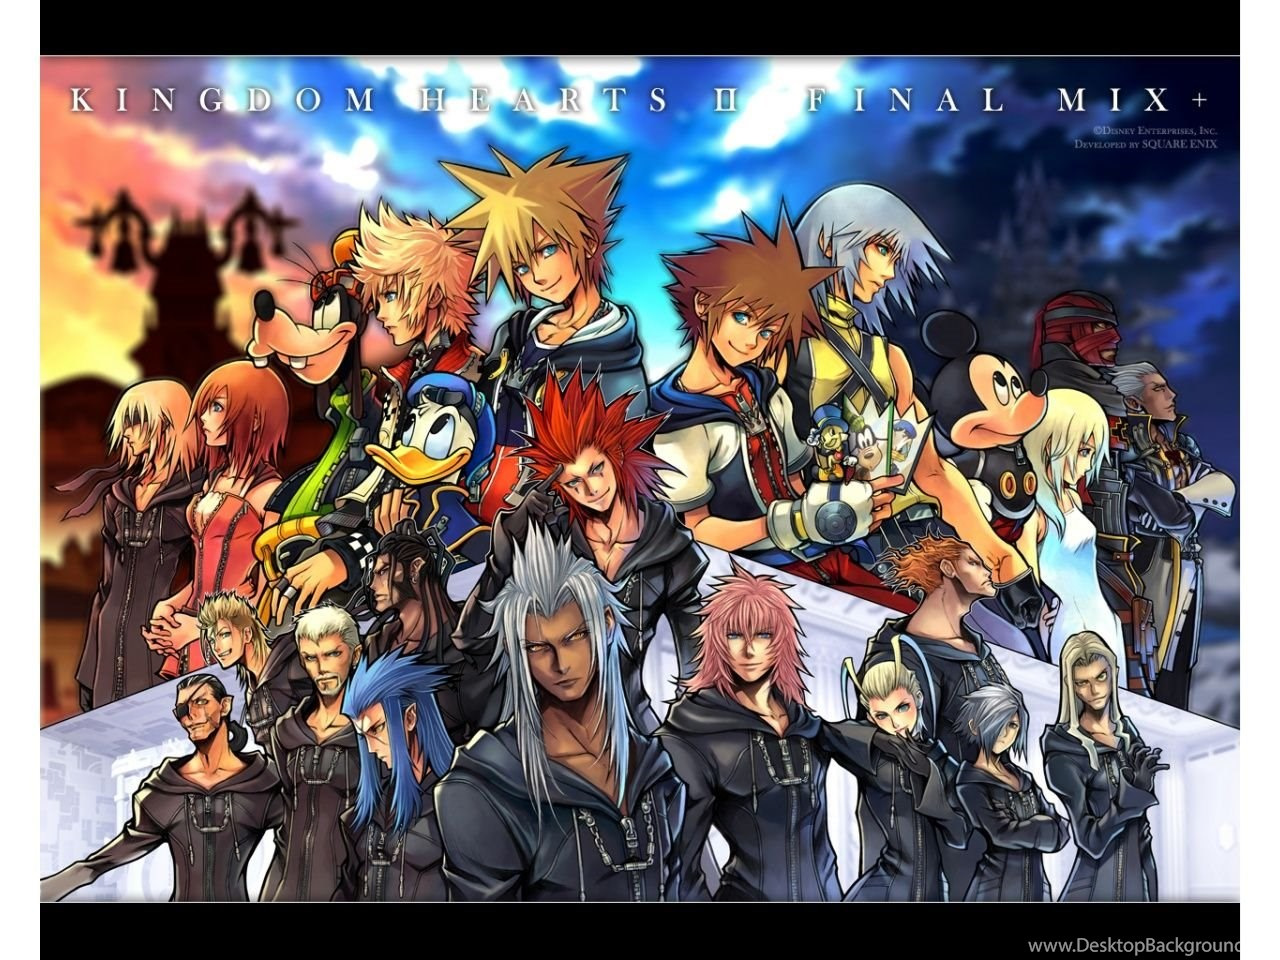 Kingdom Hearts Wallpapers Hd Wallpapers Cave Desktop Background